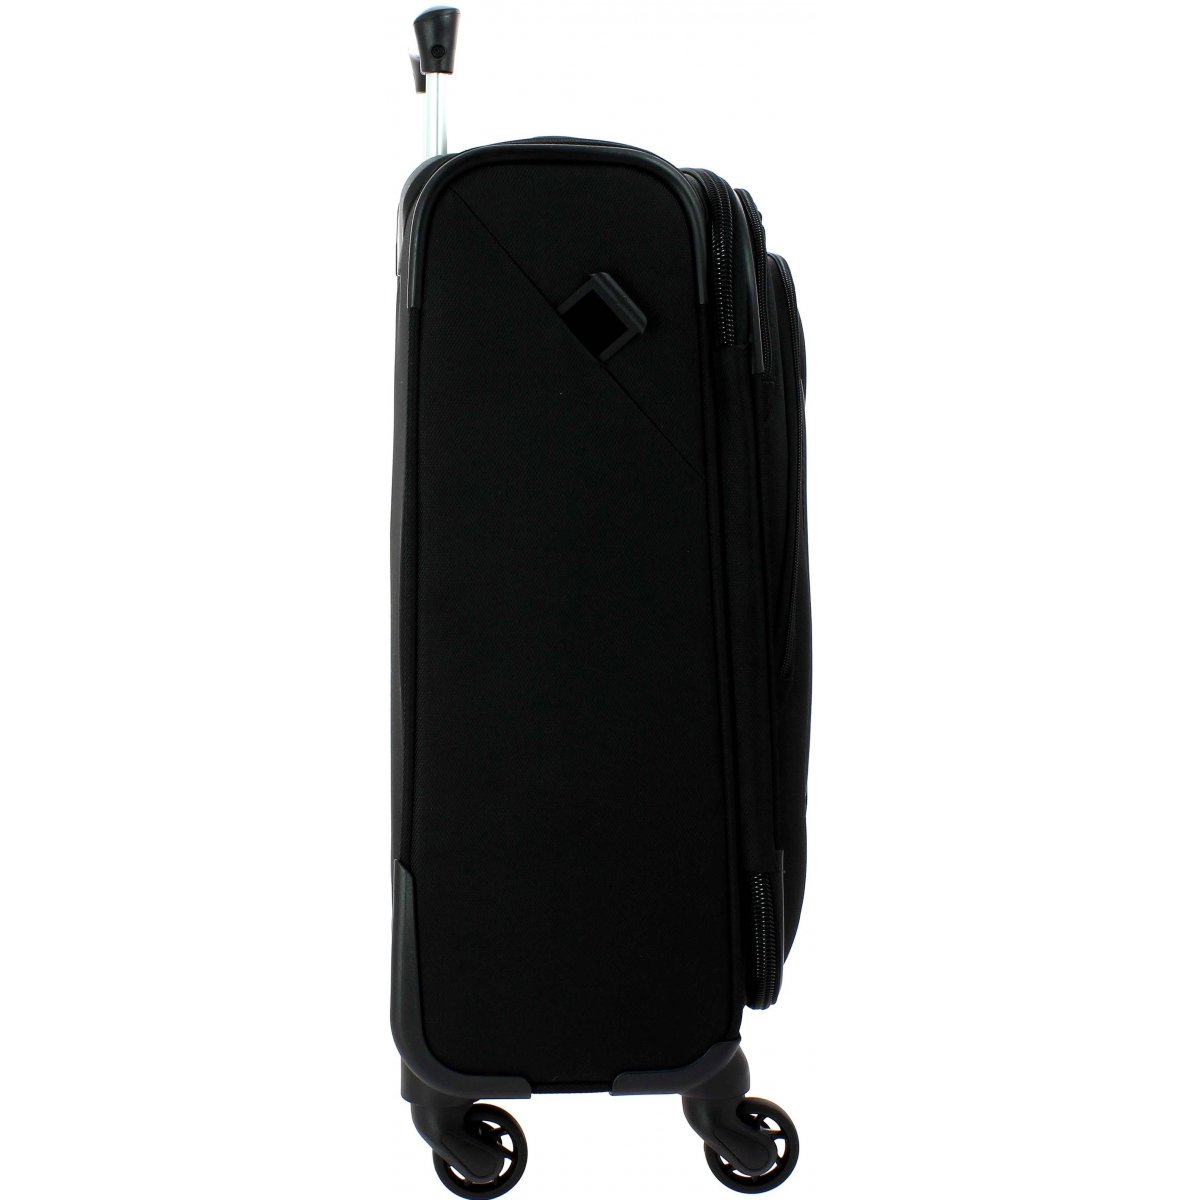 Valise cabine samsonite x blade 55 cm xblade90 couleur - Valise a prix discount ...